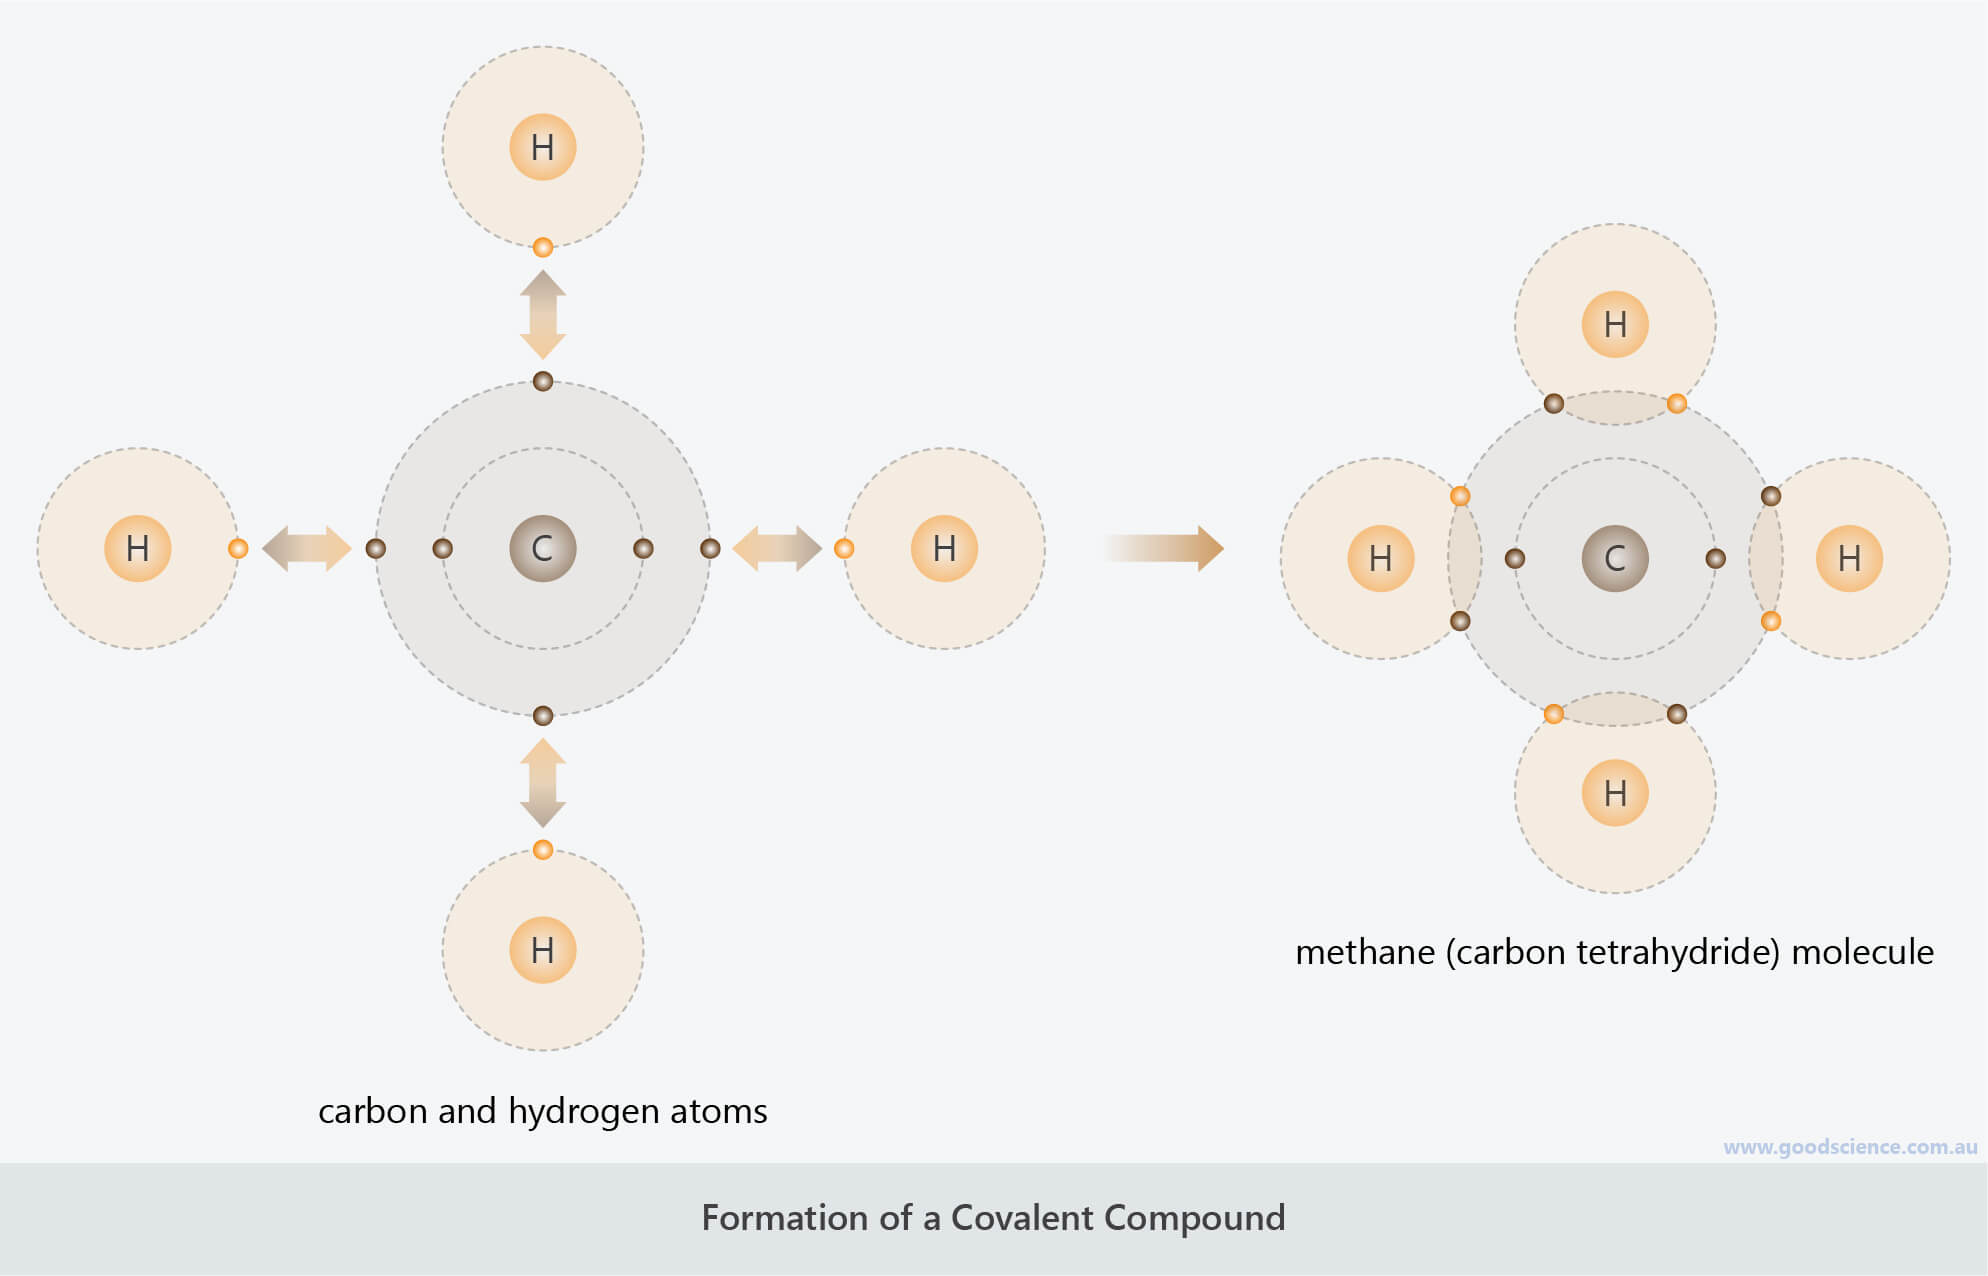 formation of a covalent compound